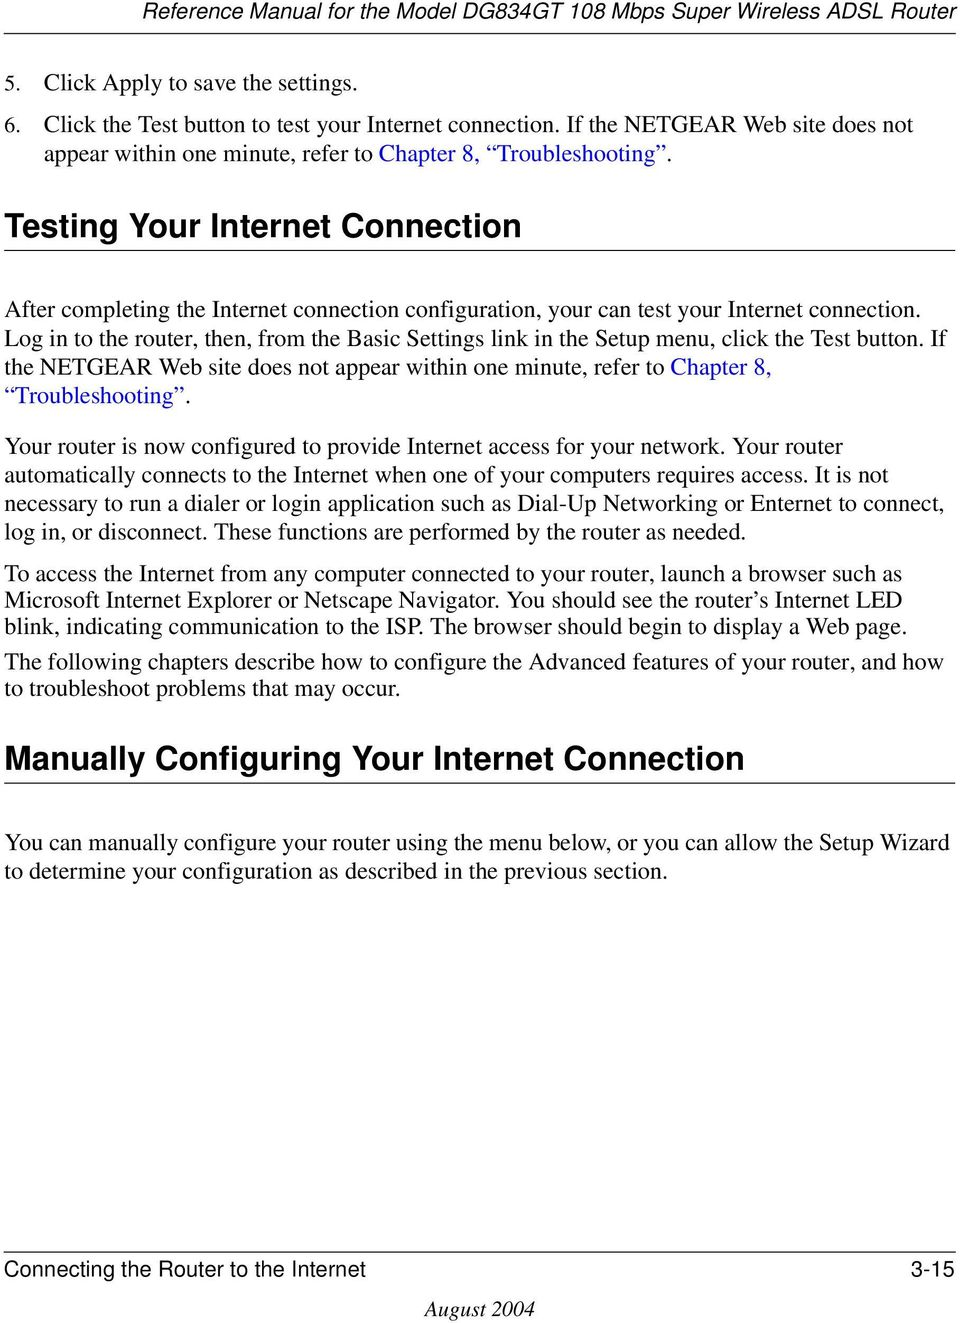 Log in to the router, then, from the Basic Settings link in the Setup menu, click the Test button. If the NETGEAR Web site does not appear within one minute, refer to Chapter 8, Troubleshooting.